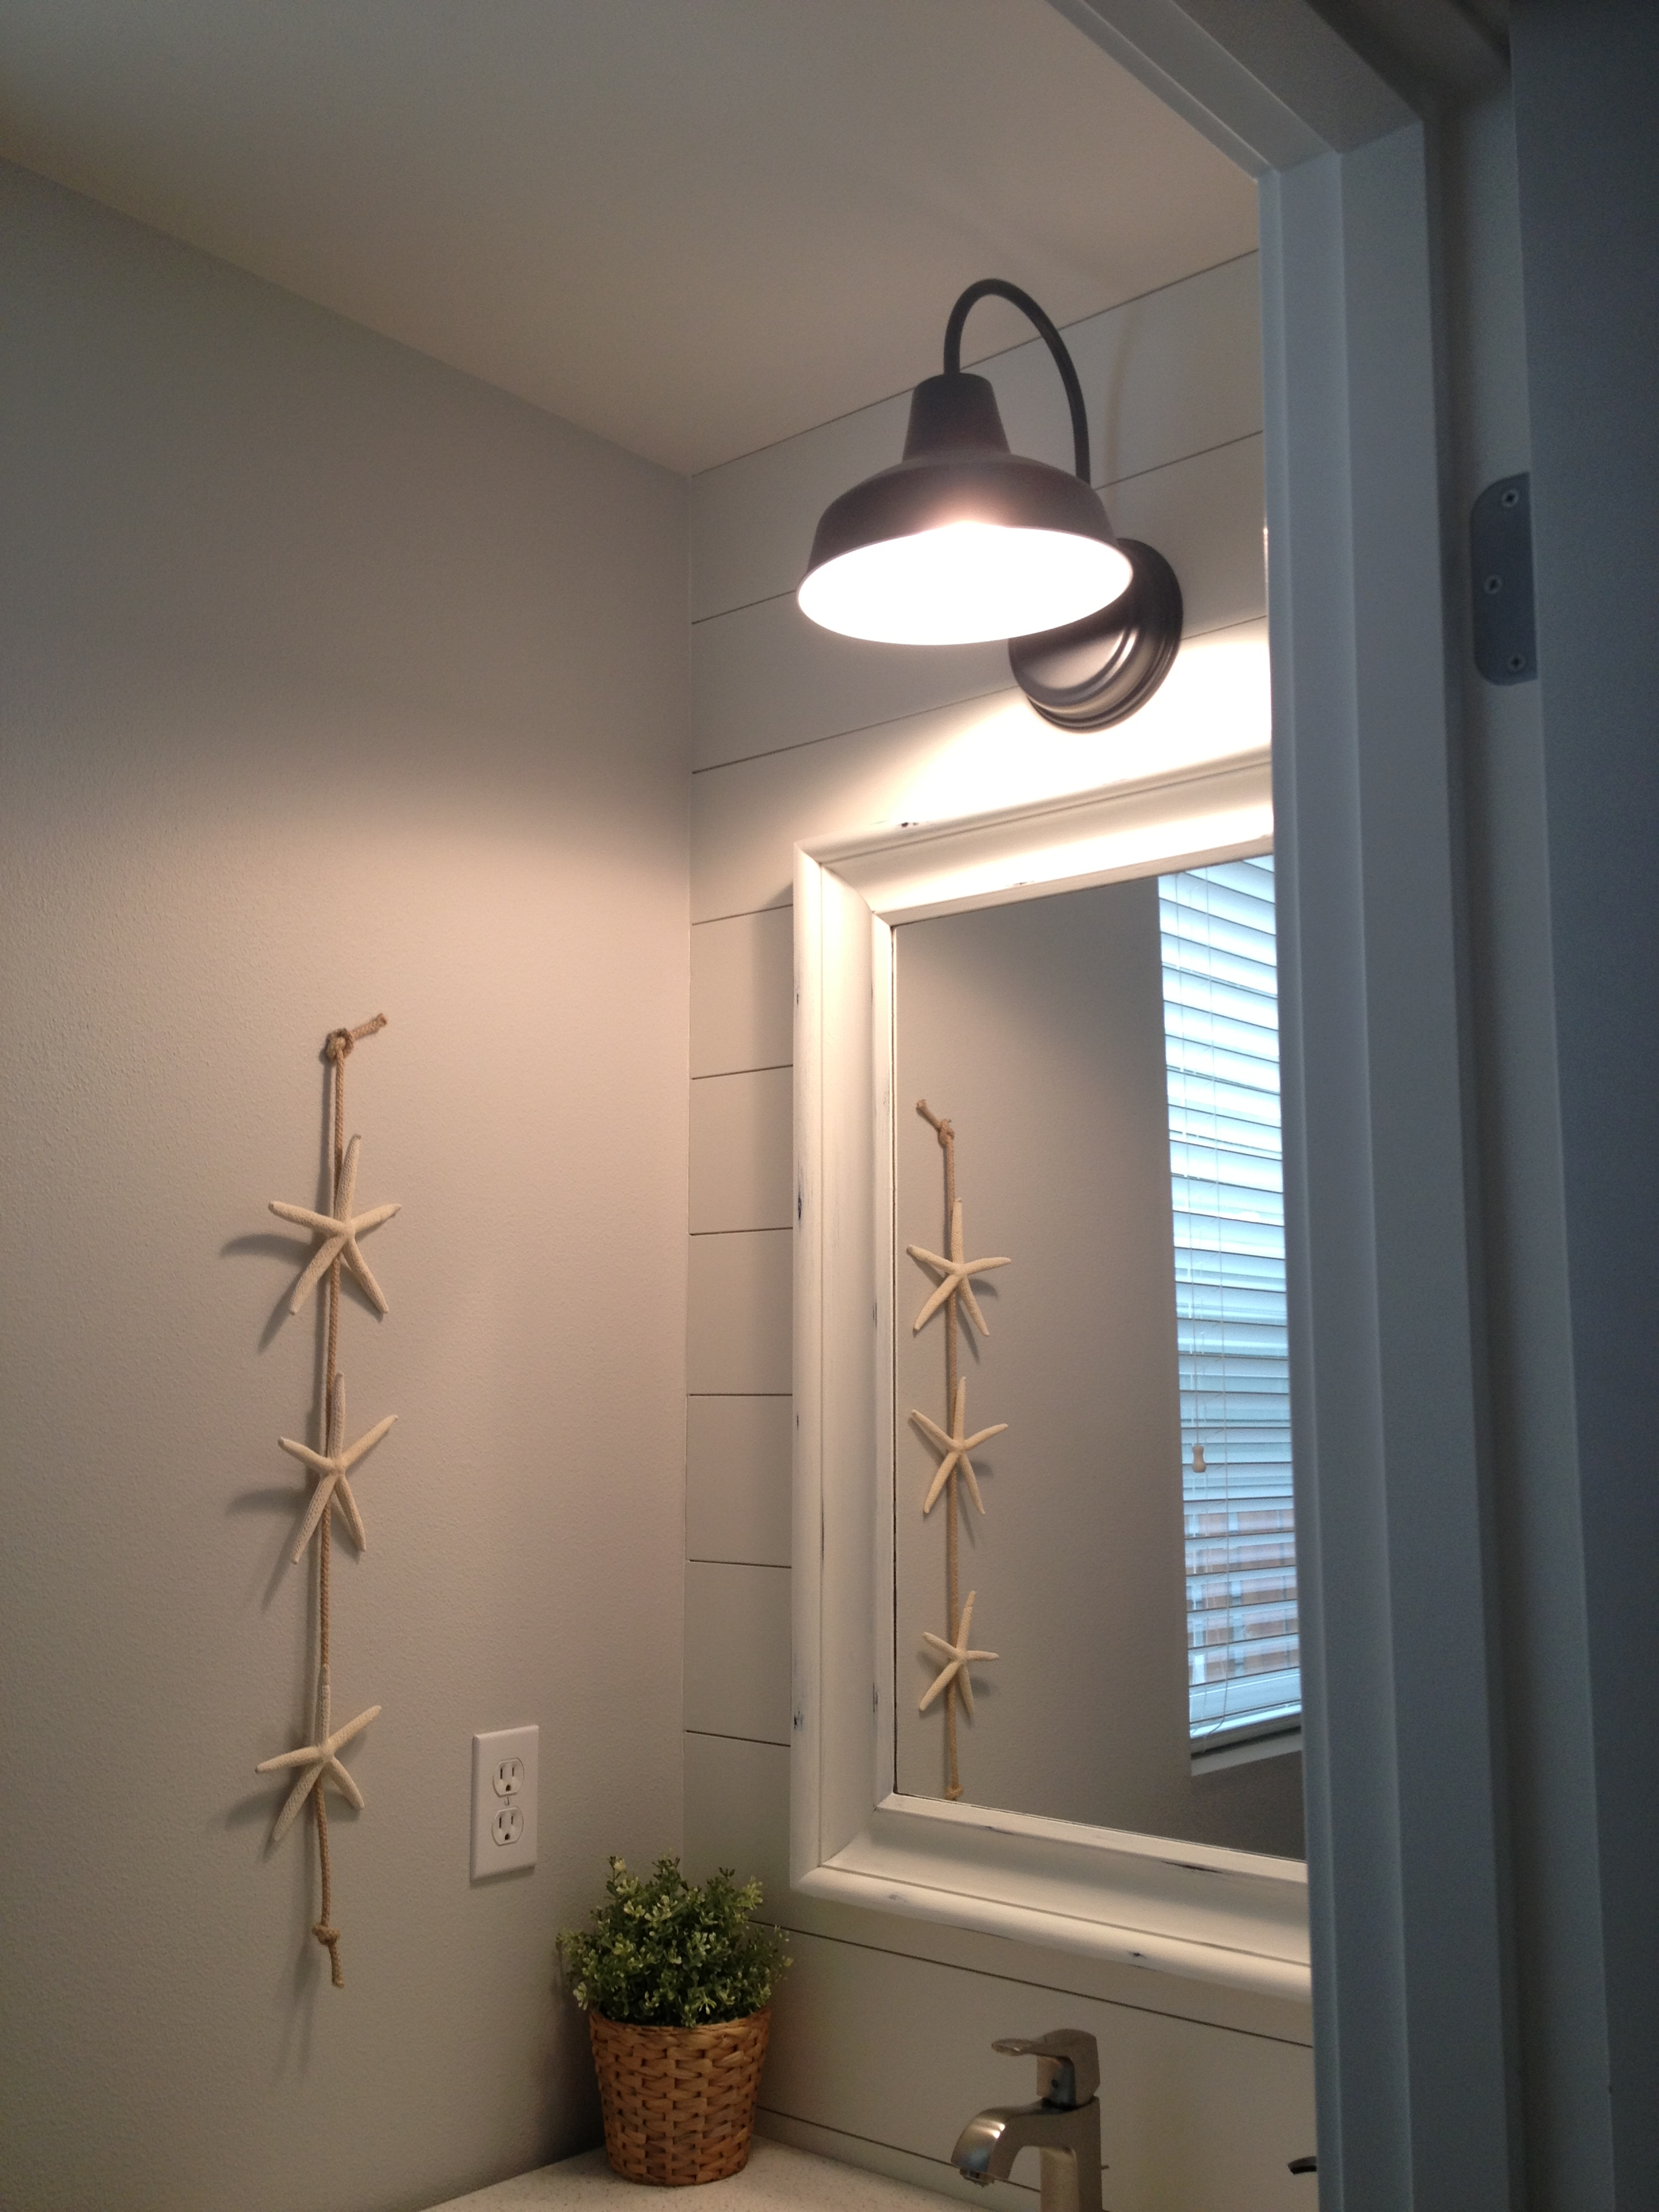 Barn wall sconce lends farmhouse look to powder room for Lighting for a bathroom